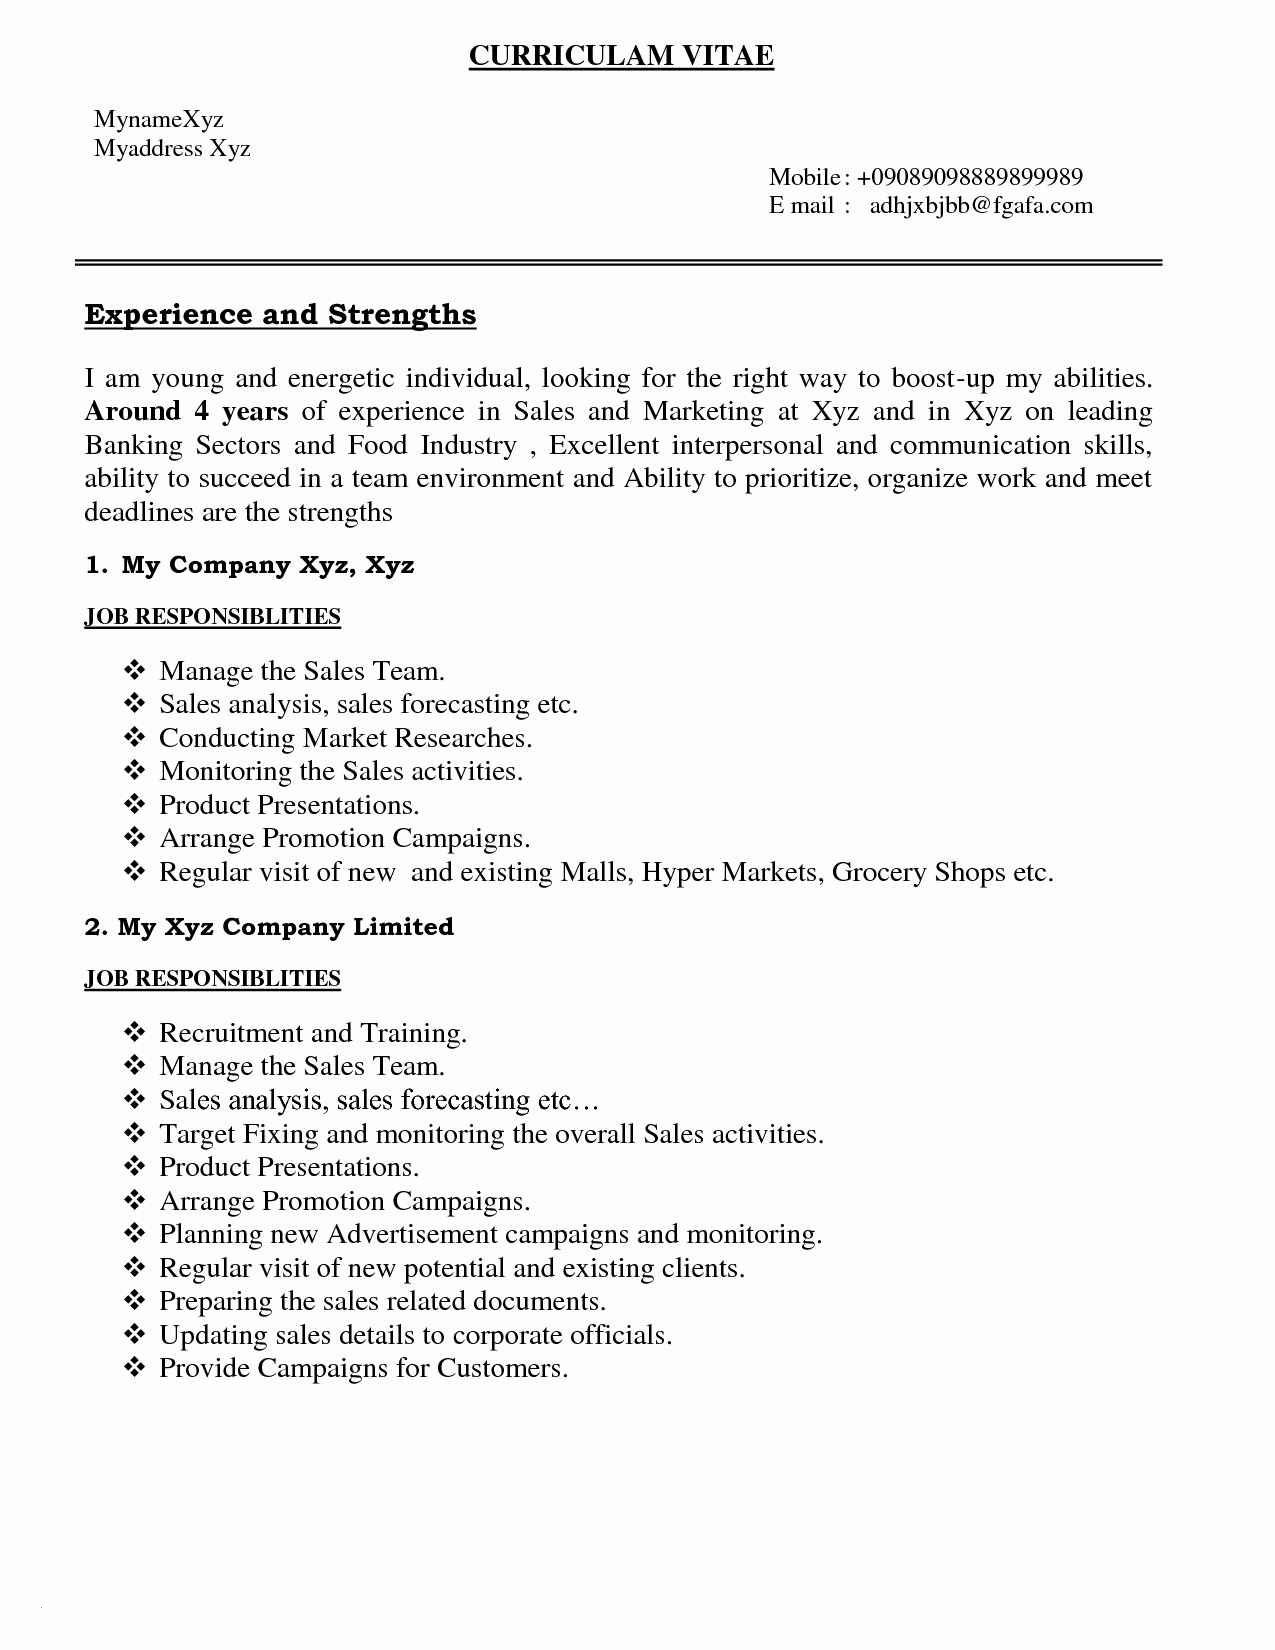 Phlebotomist Resume Template - Free Phlebotomist Resume Templates Paragraphrewriter